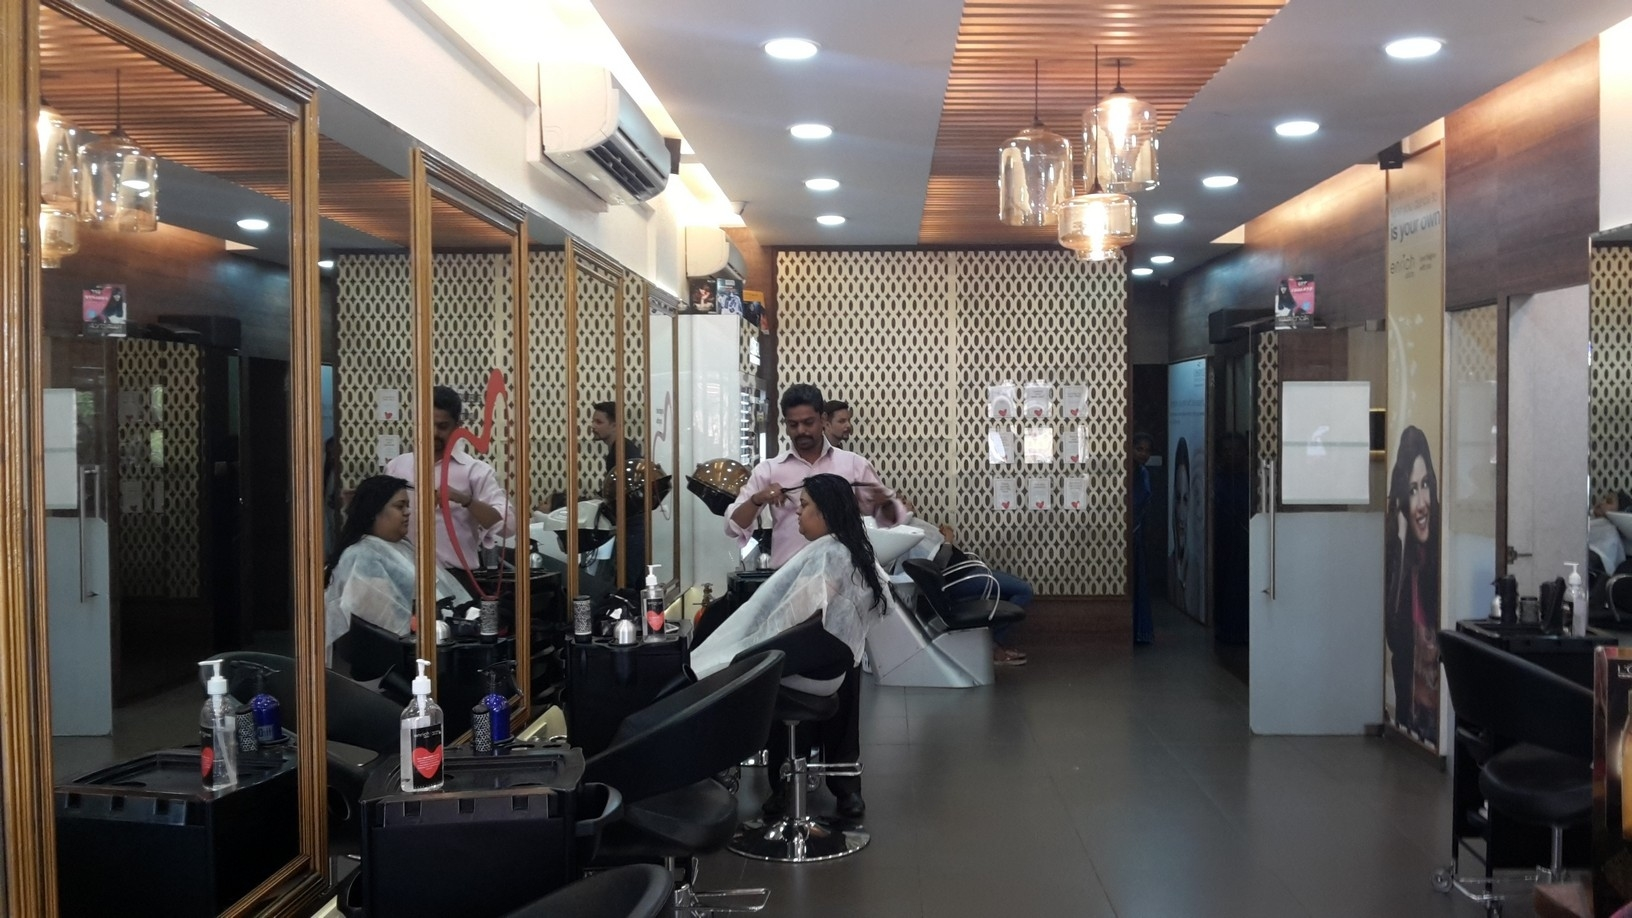 Enrich Salon,bannerghatta Road,bangalore With Prices & Rates intended for Haircut Price In Enrich Salon